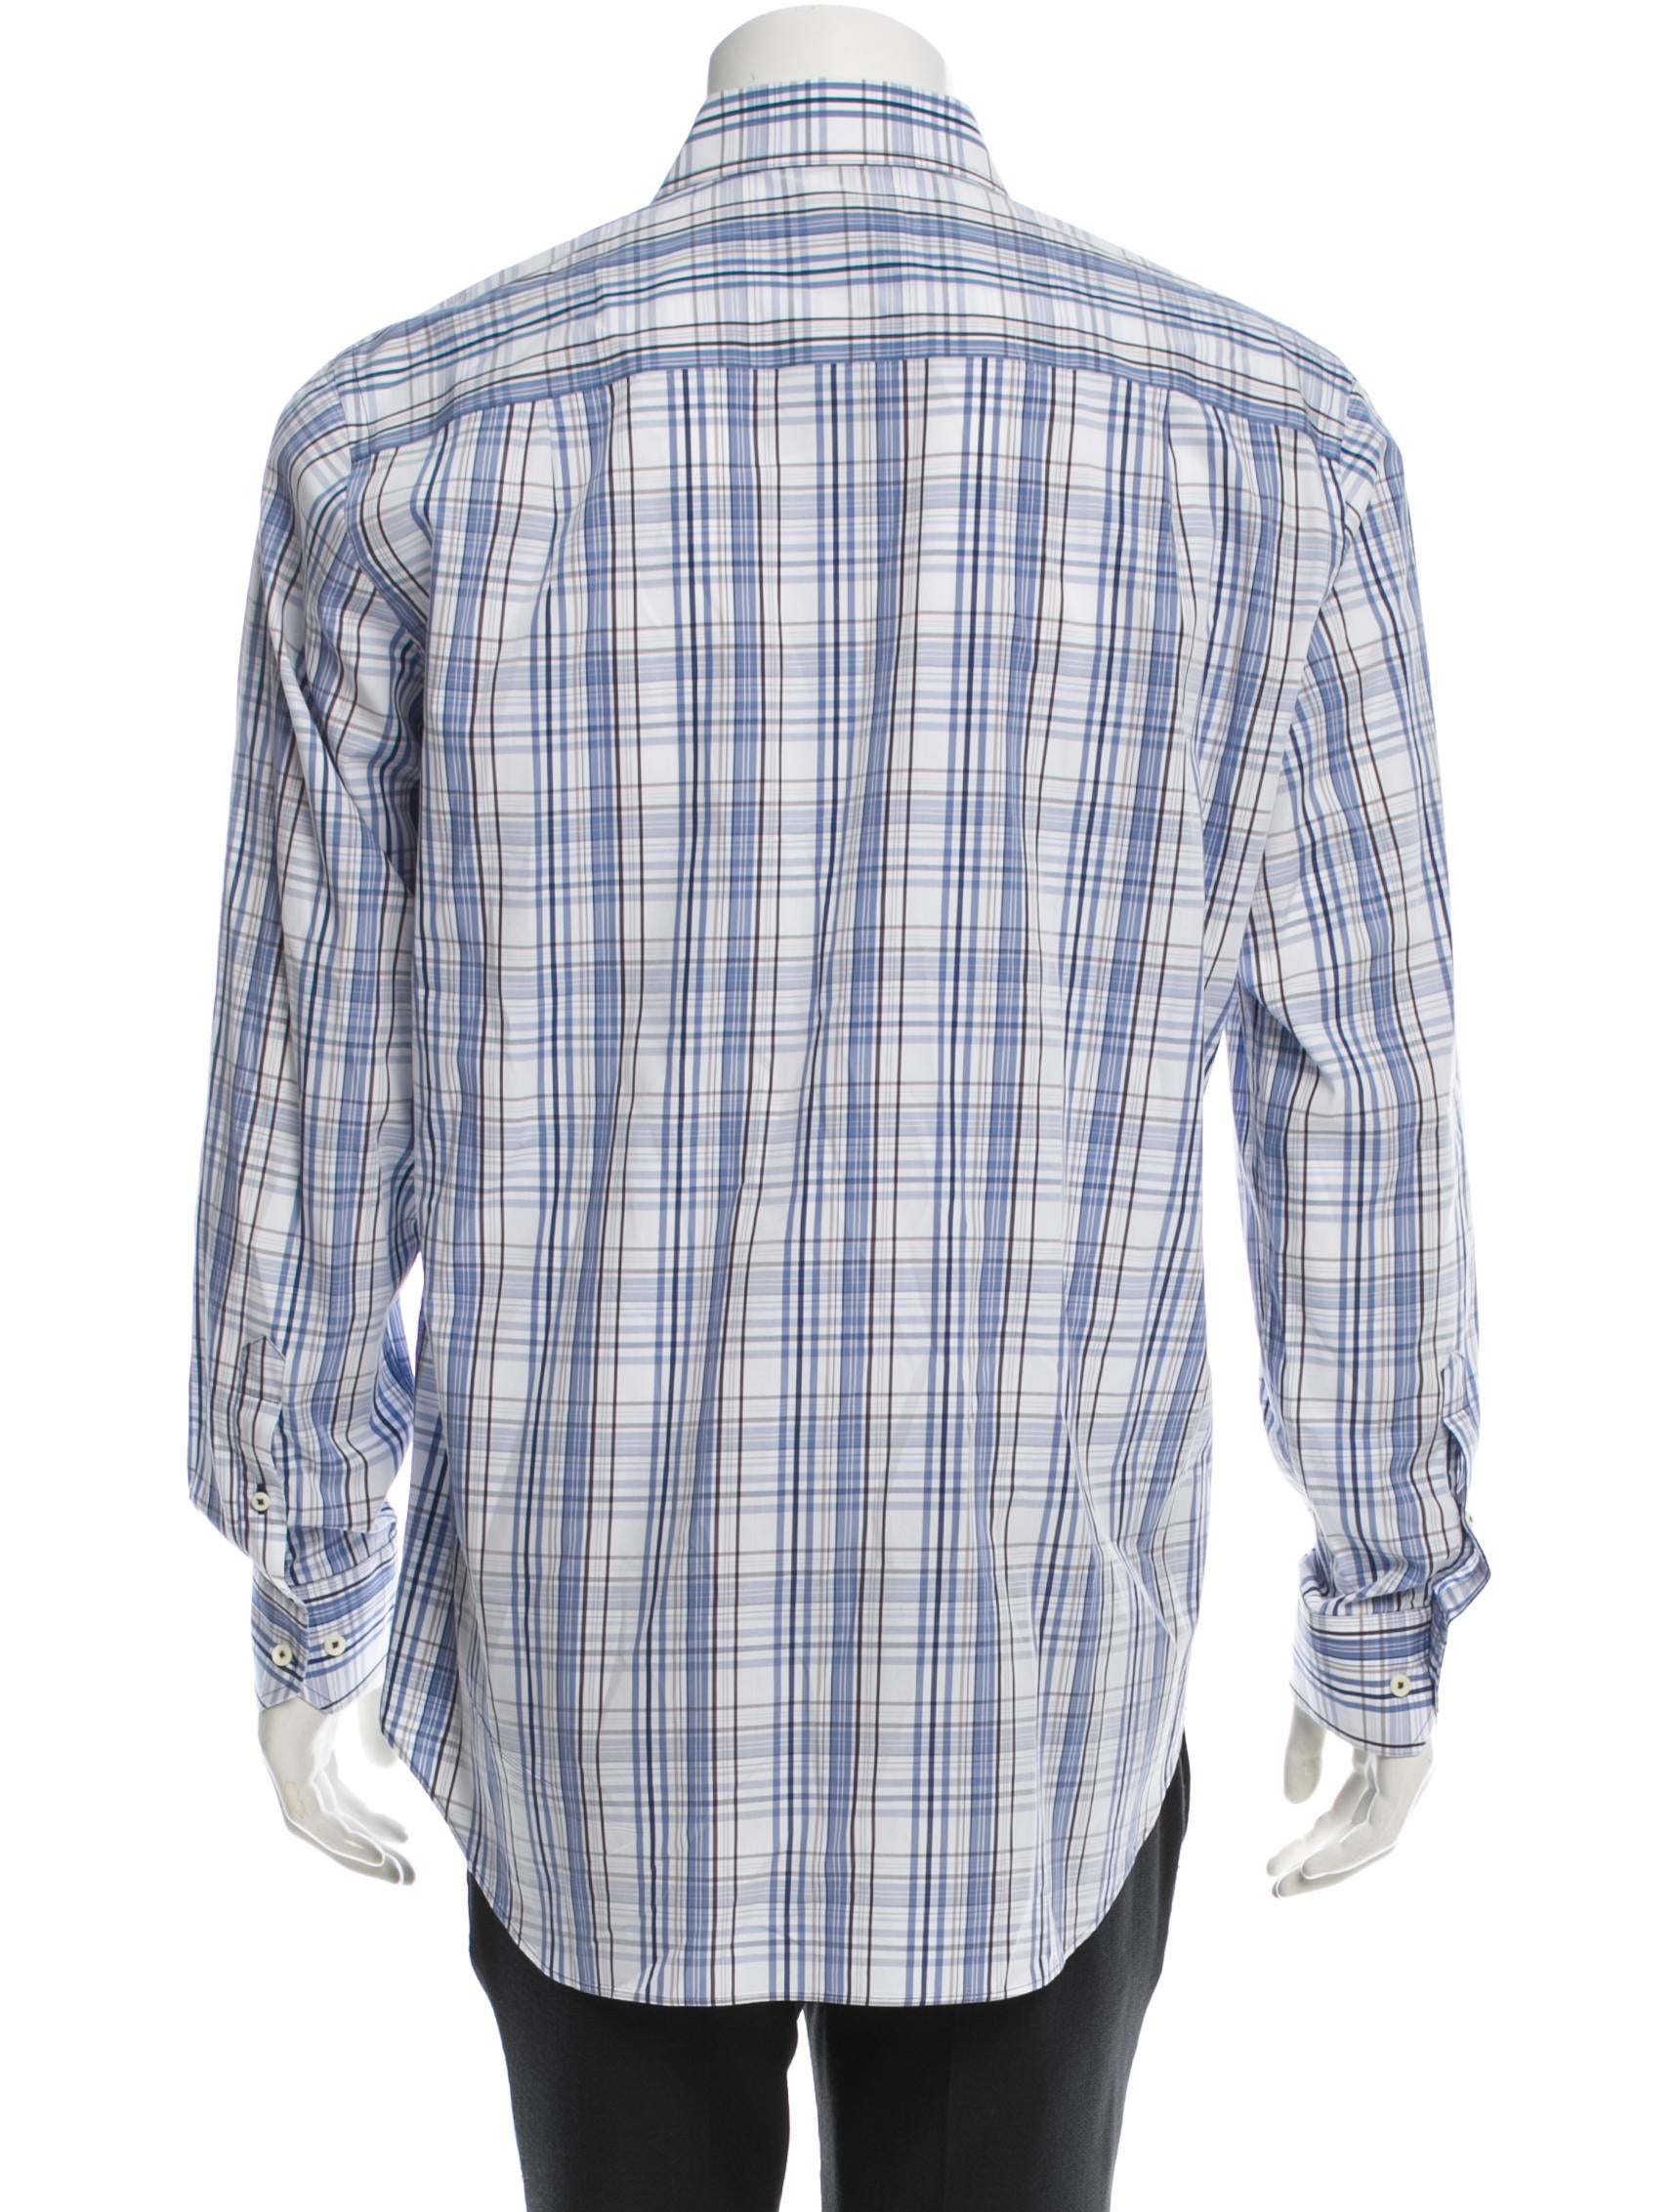 single men in donahue ★ david donahue trim fit diamond  david donahue trim fit diamond weave dress shirt has hundreds of items on sale every single day for  men appreciate such.